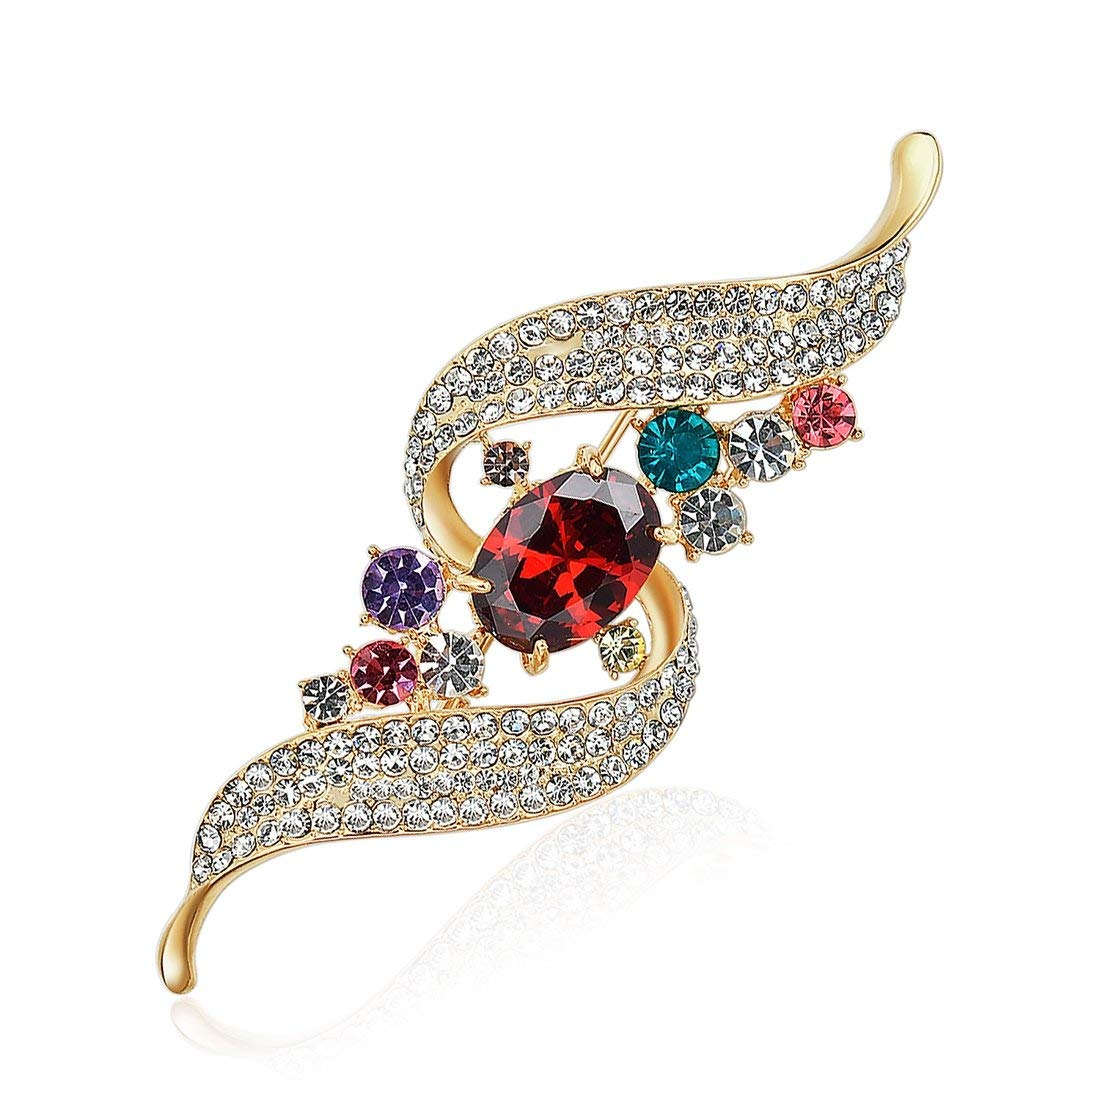 e2a5186a3 Get Quotations · Designs Personalized Decorative Luxury Rhinestone Brooch  Leaves Multicolor Retro Brooches Wholesale Jewelry Gift-in Brooches